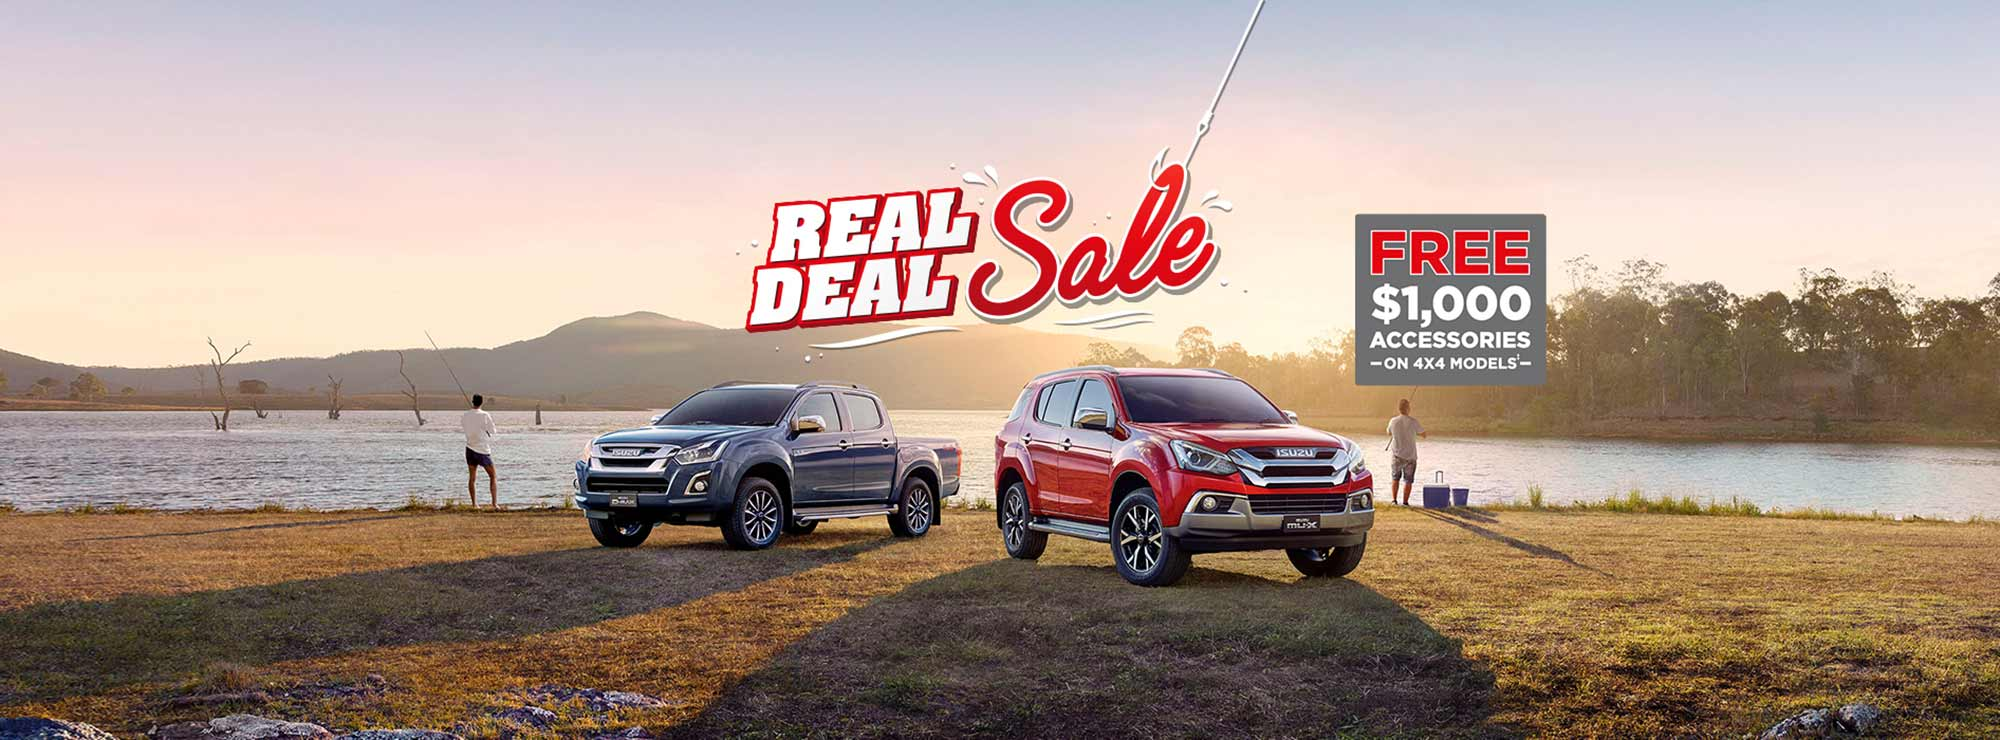 Isuzu UTE Real Deal Sale